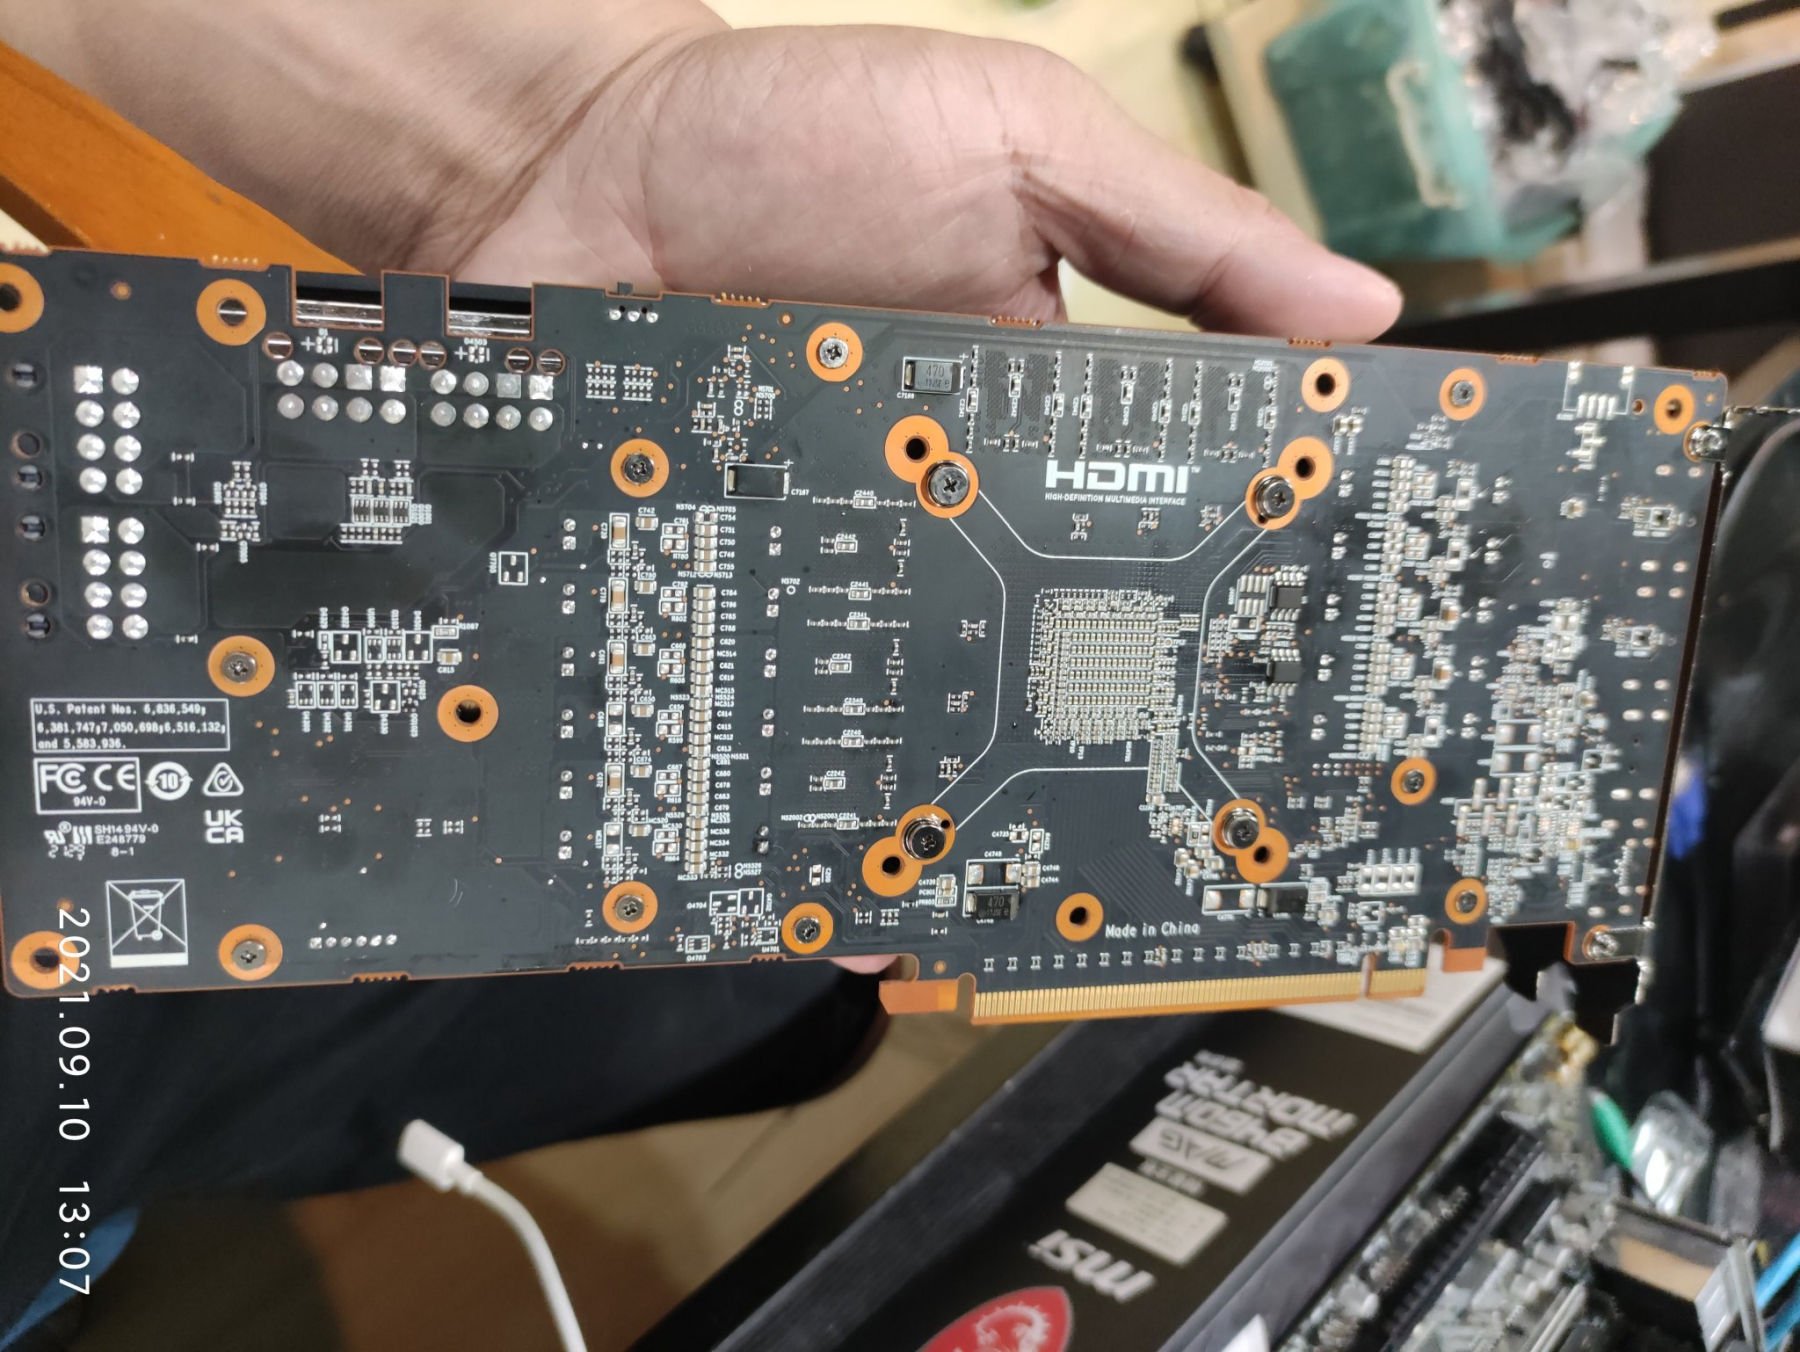 A Purported AMD Cryptomining Card Showing A Fanless, Passive Cooling Design